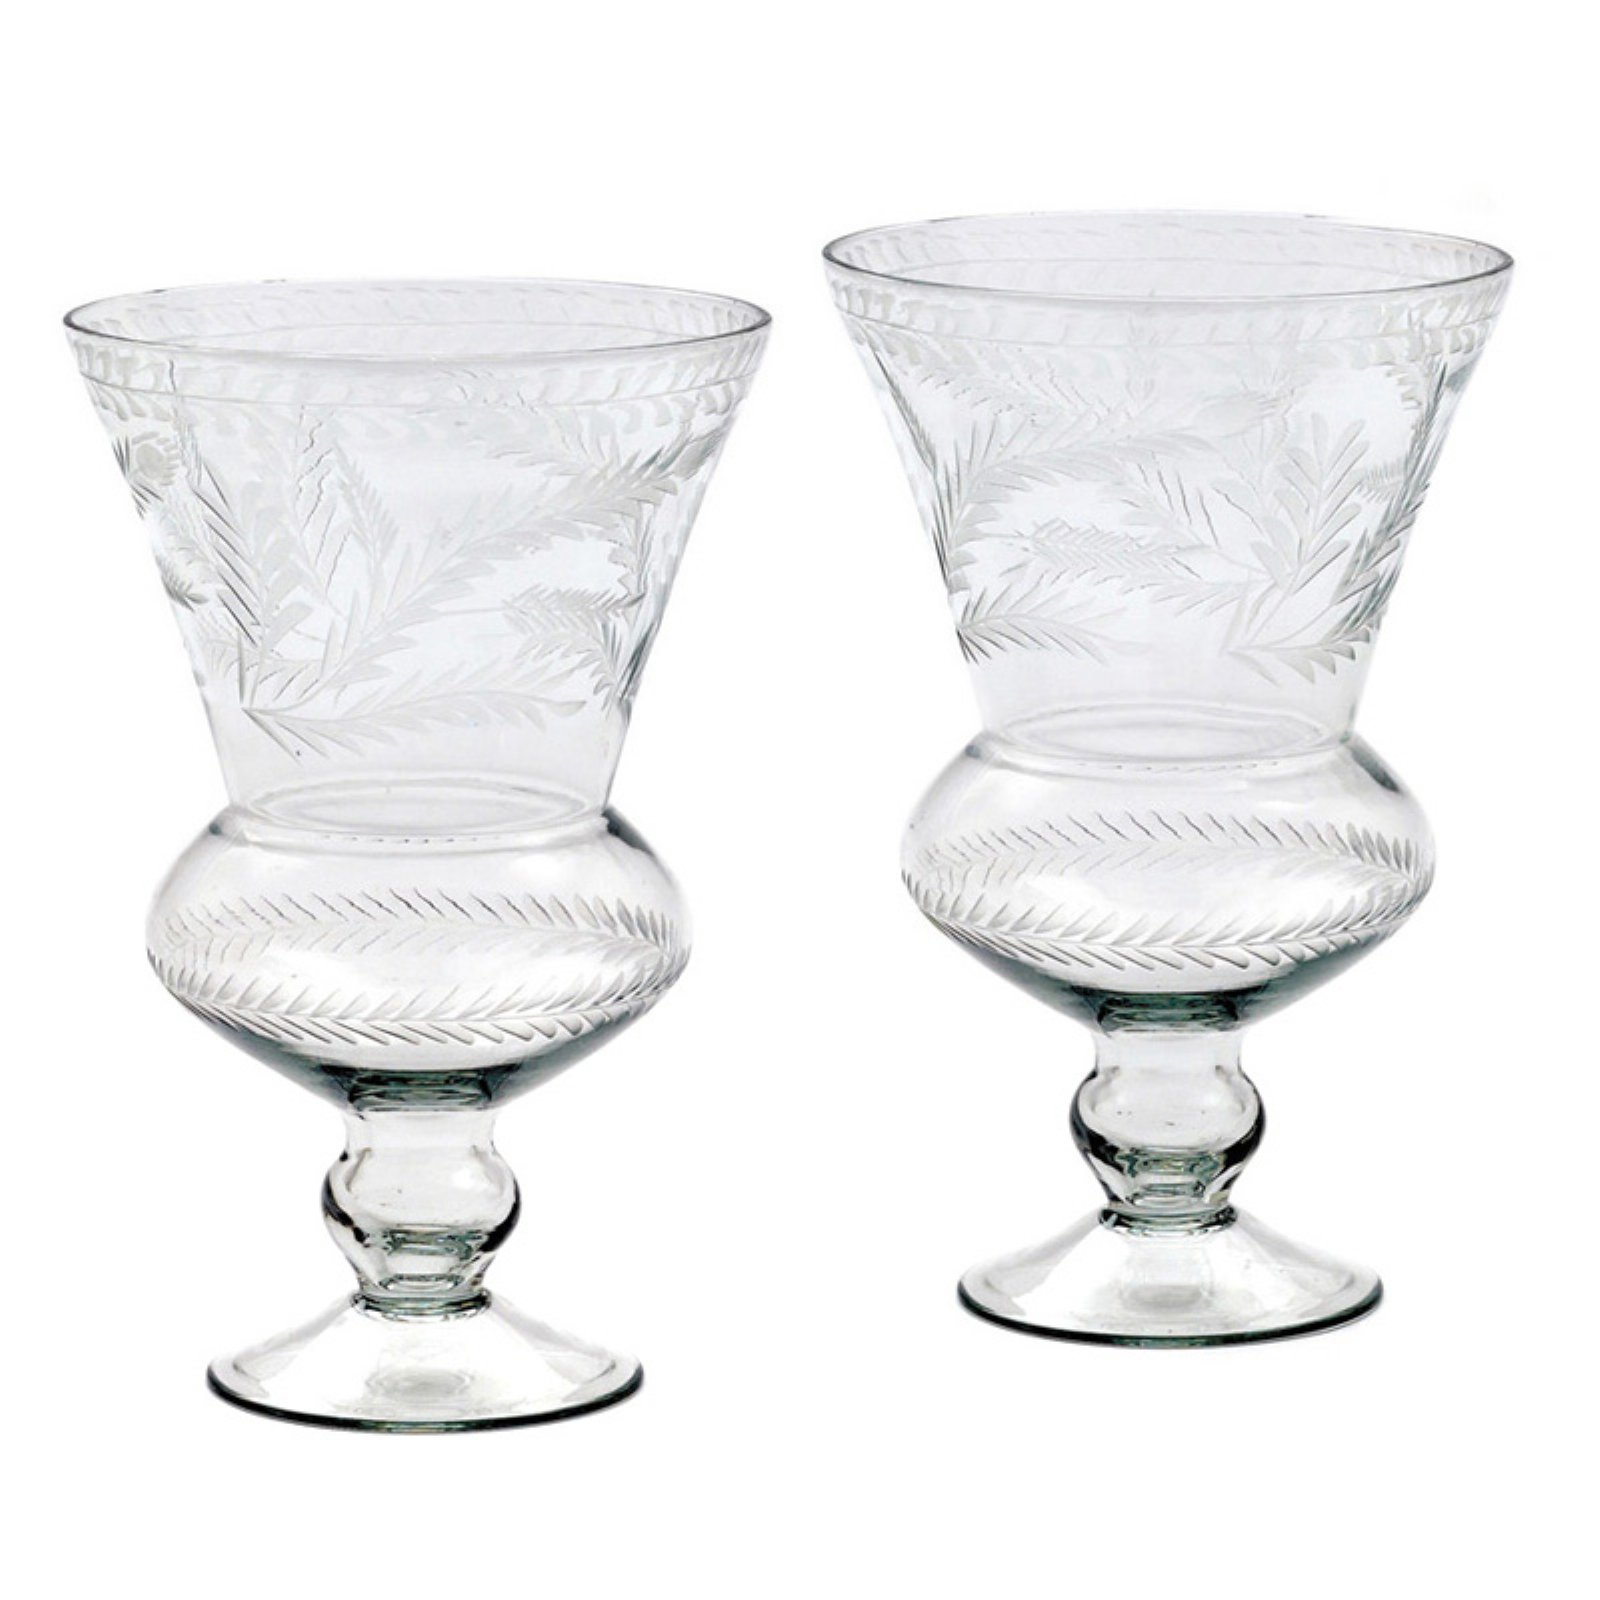 Hip Vintage Bistro Hurricane Candle Holder - Set of 2